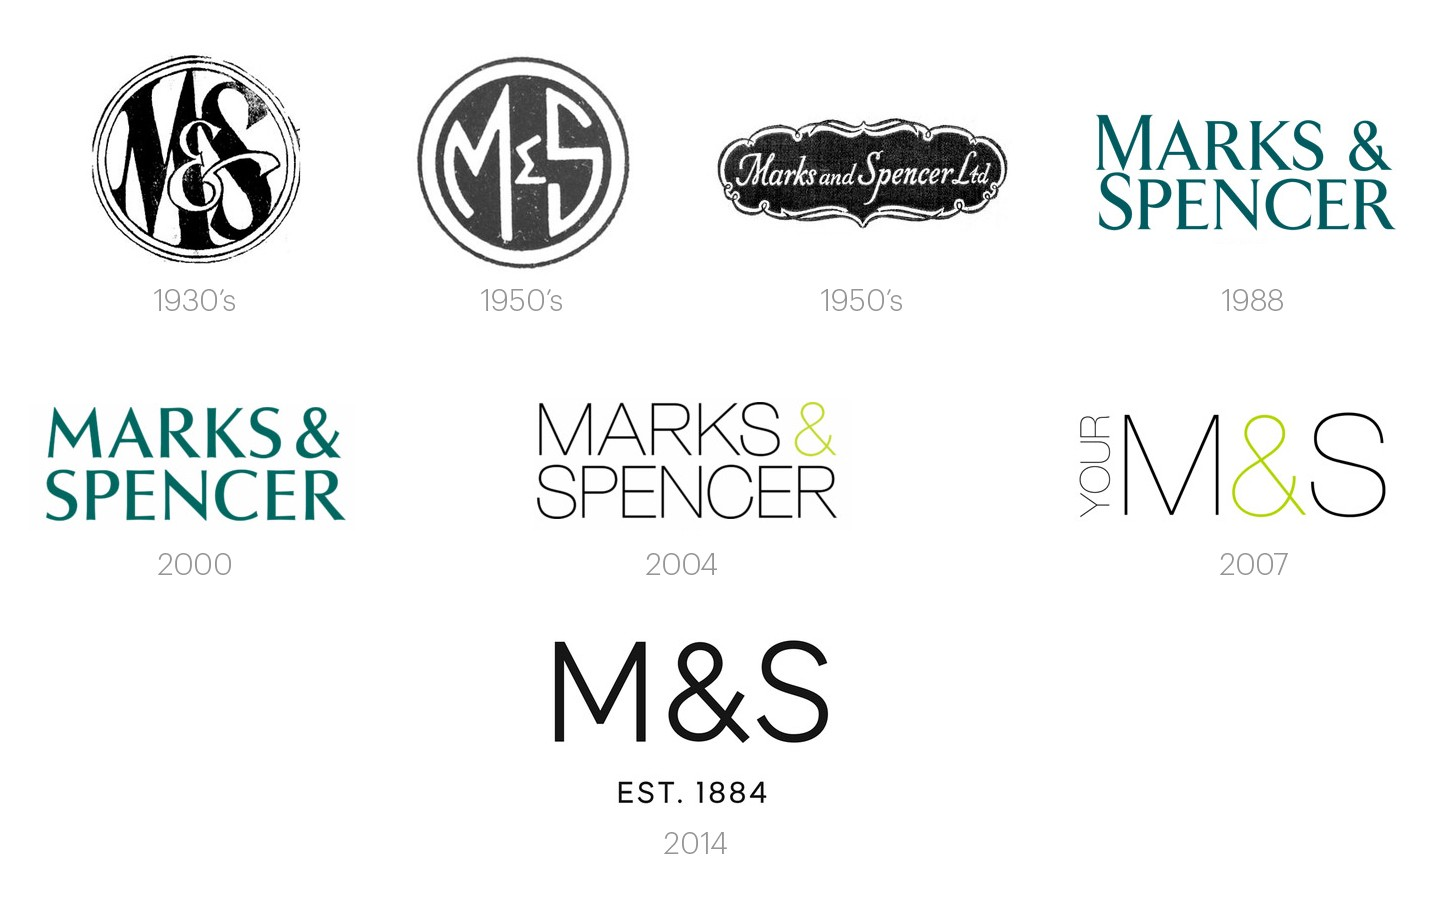 M&S has taken advantage of the power of logo design, to demonstrate that while the core idea of value remains crucial to the company, it's also taken steps ...